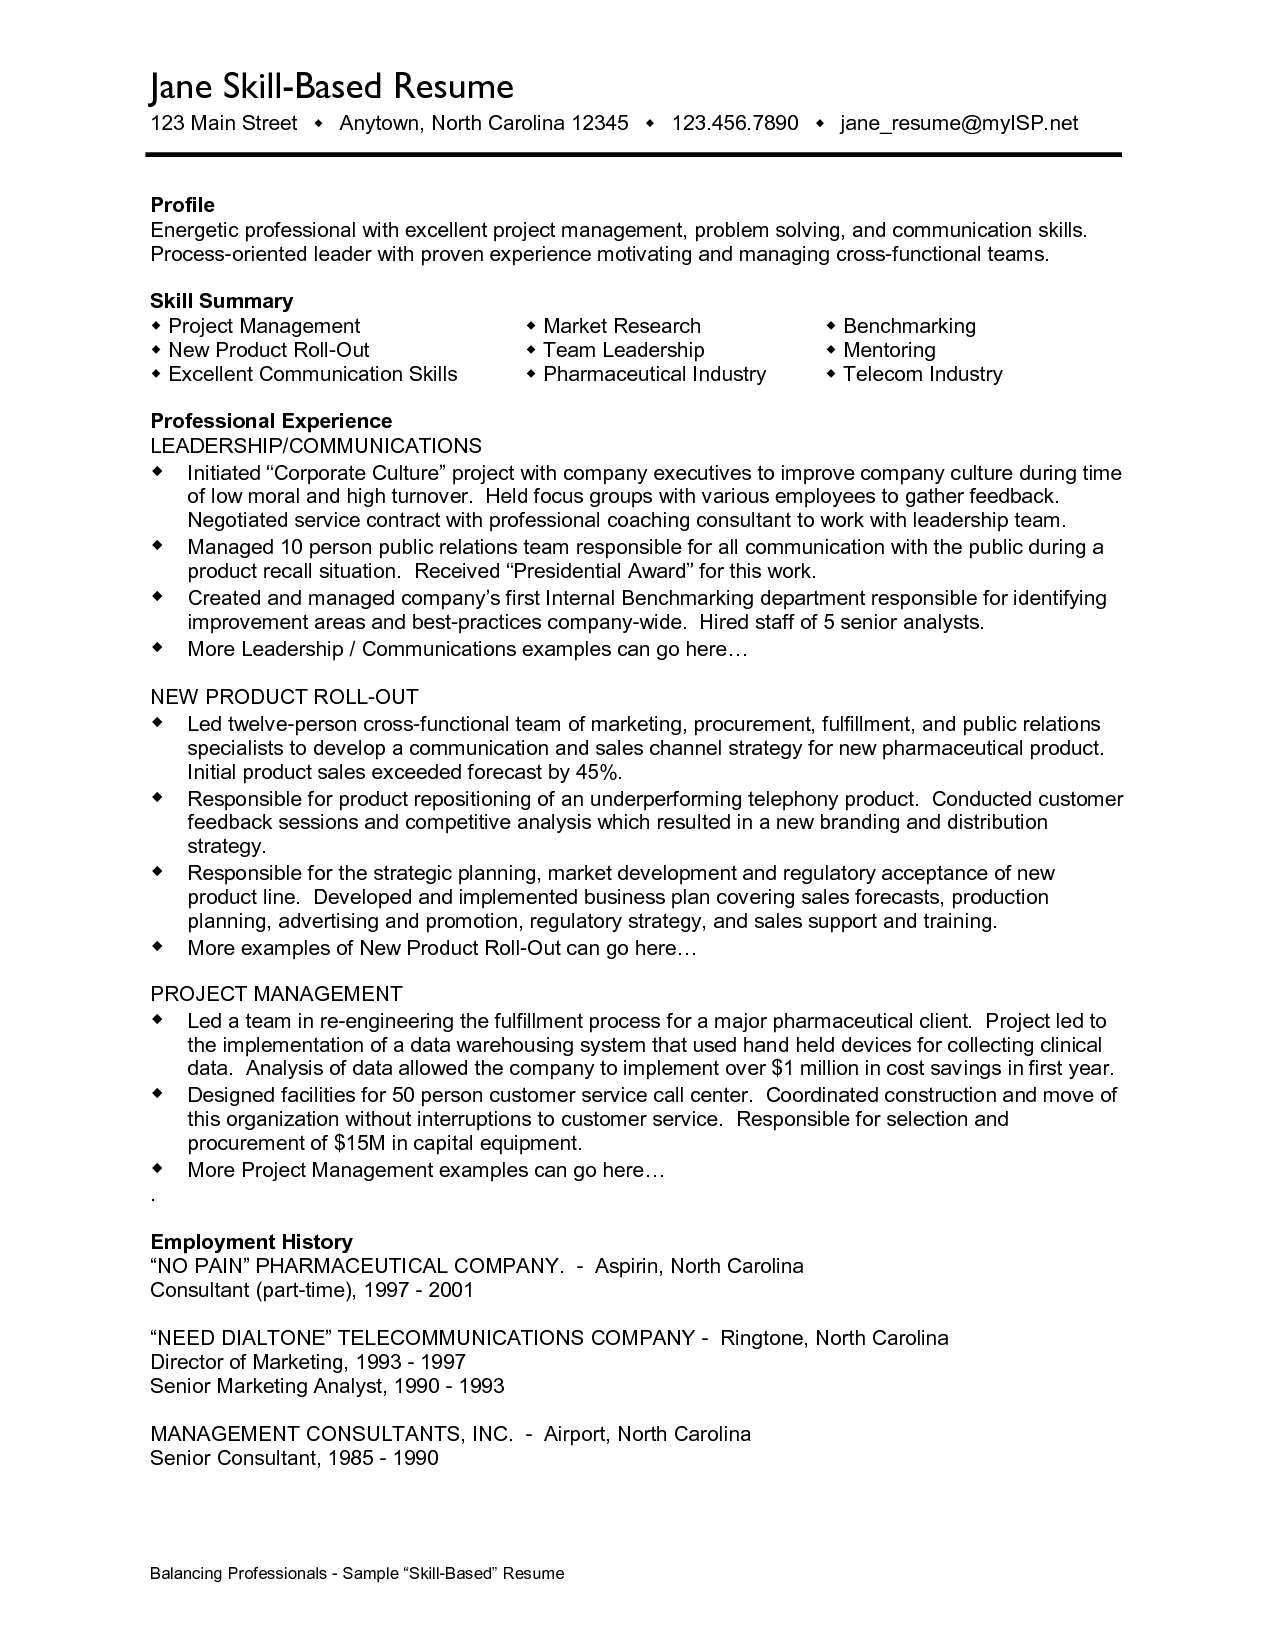 Example Of A Professional Resume Professional Skills Example For Resume Koran Sticken Co